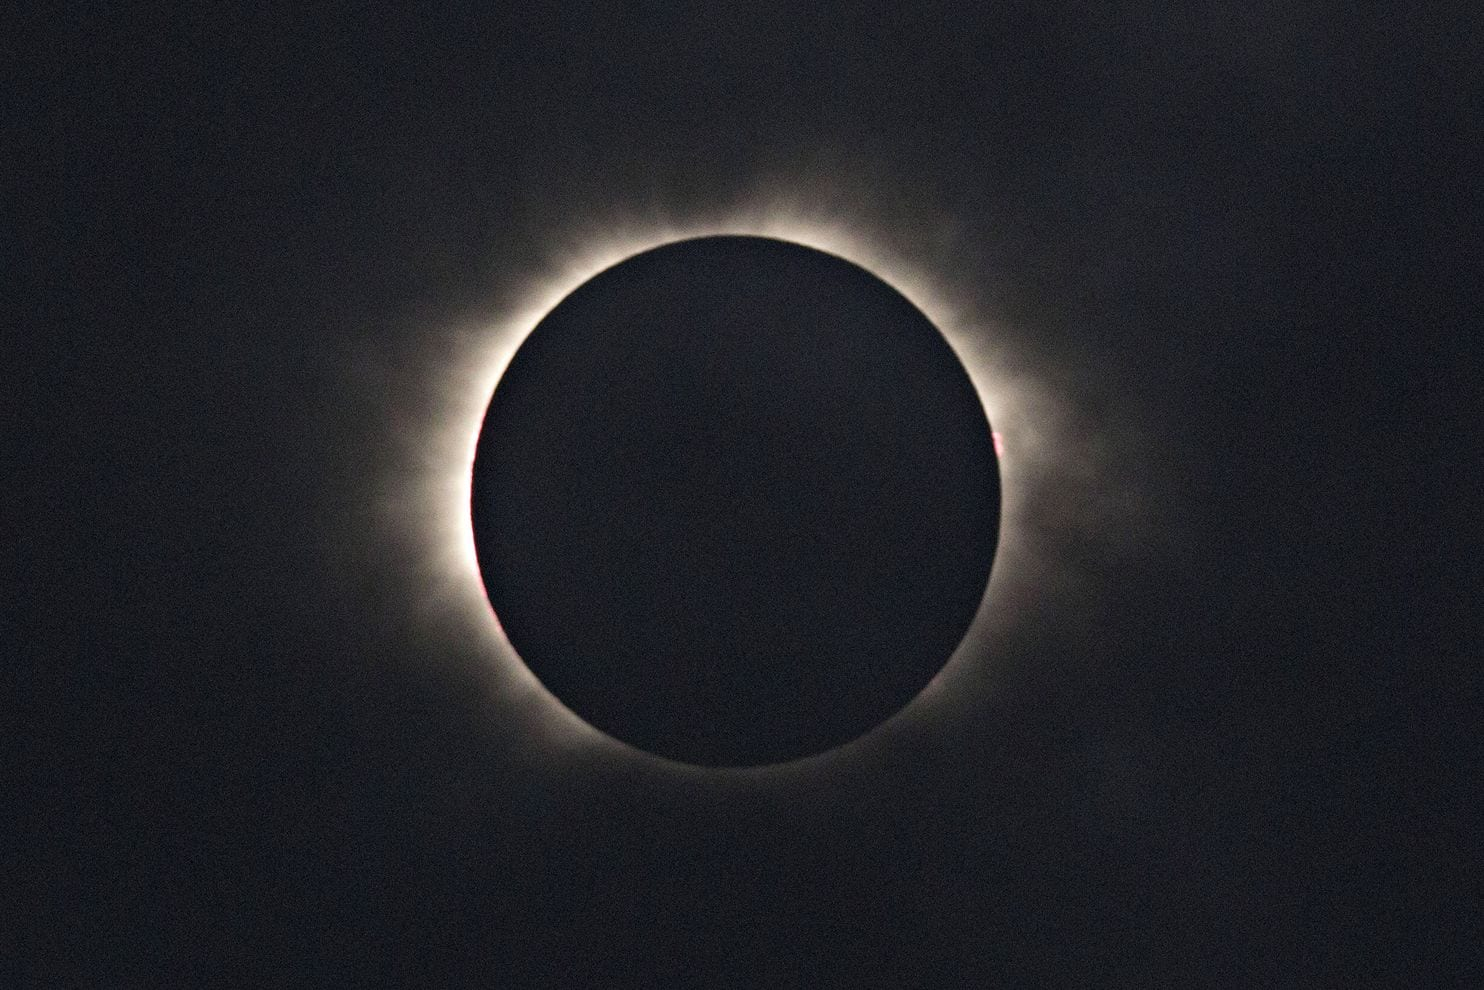 Solar Eclipse In 6000 Miles Path Will Experience In Next Week, Won't Be Easy To See